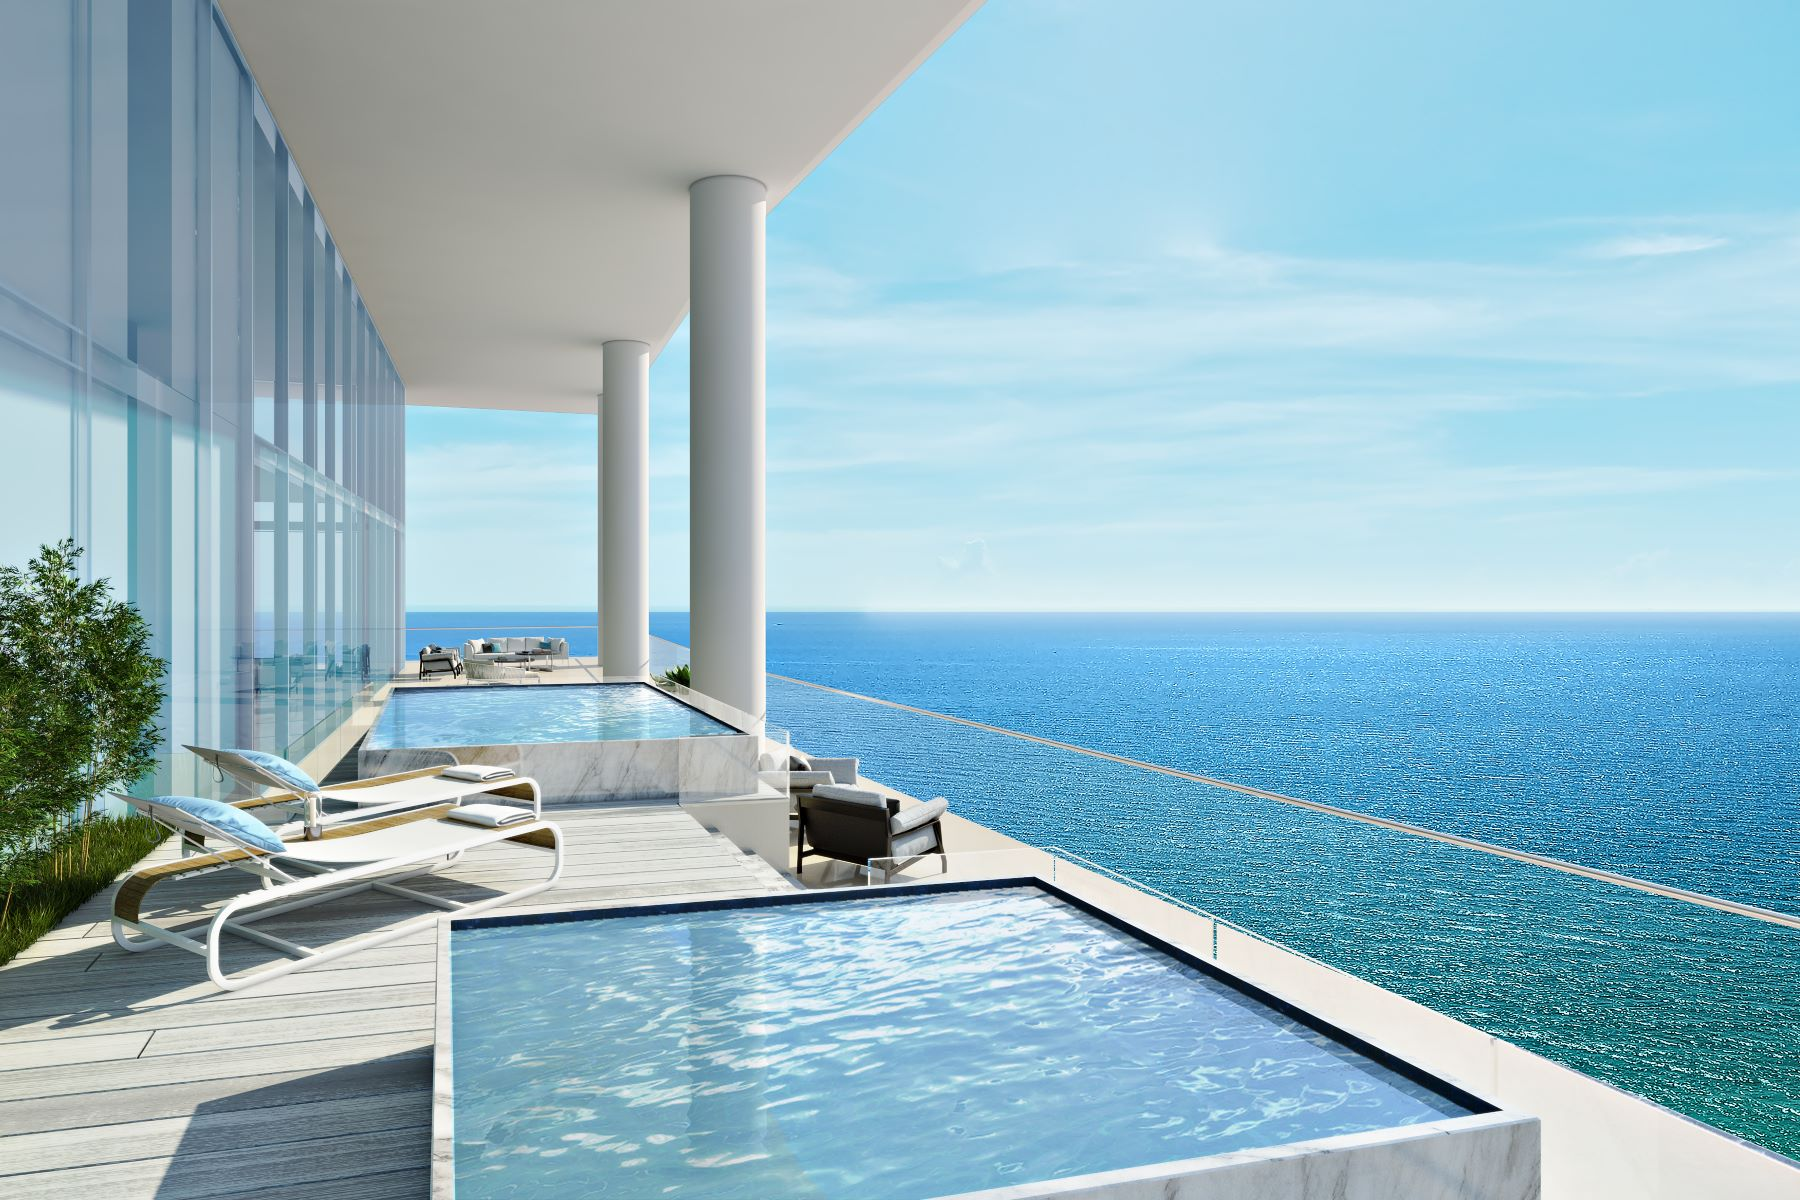 Condominium for Sale at 18501 Collins Ave #PH01 18501 Collins Ave PH01 Sunny Isles Beach, Florida 33160 United States